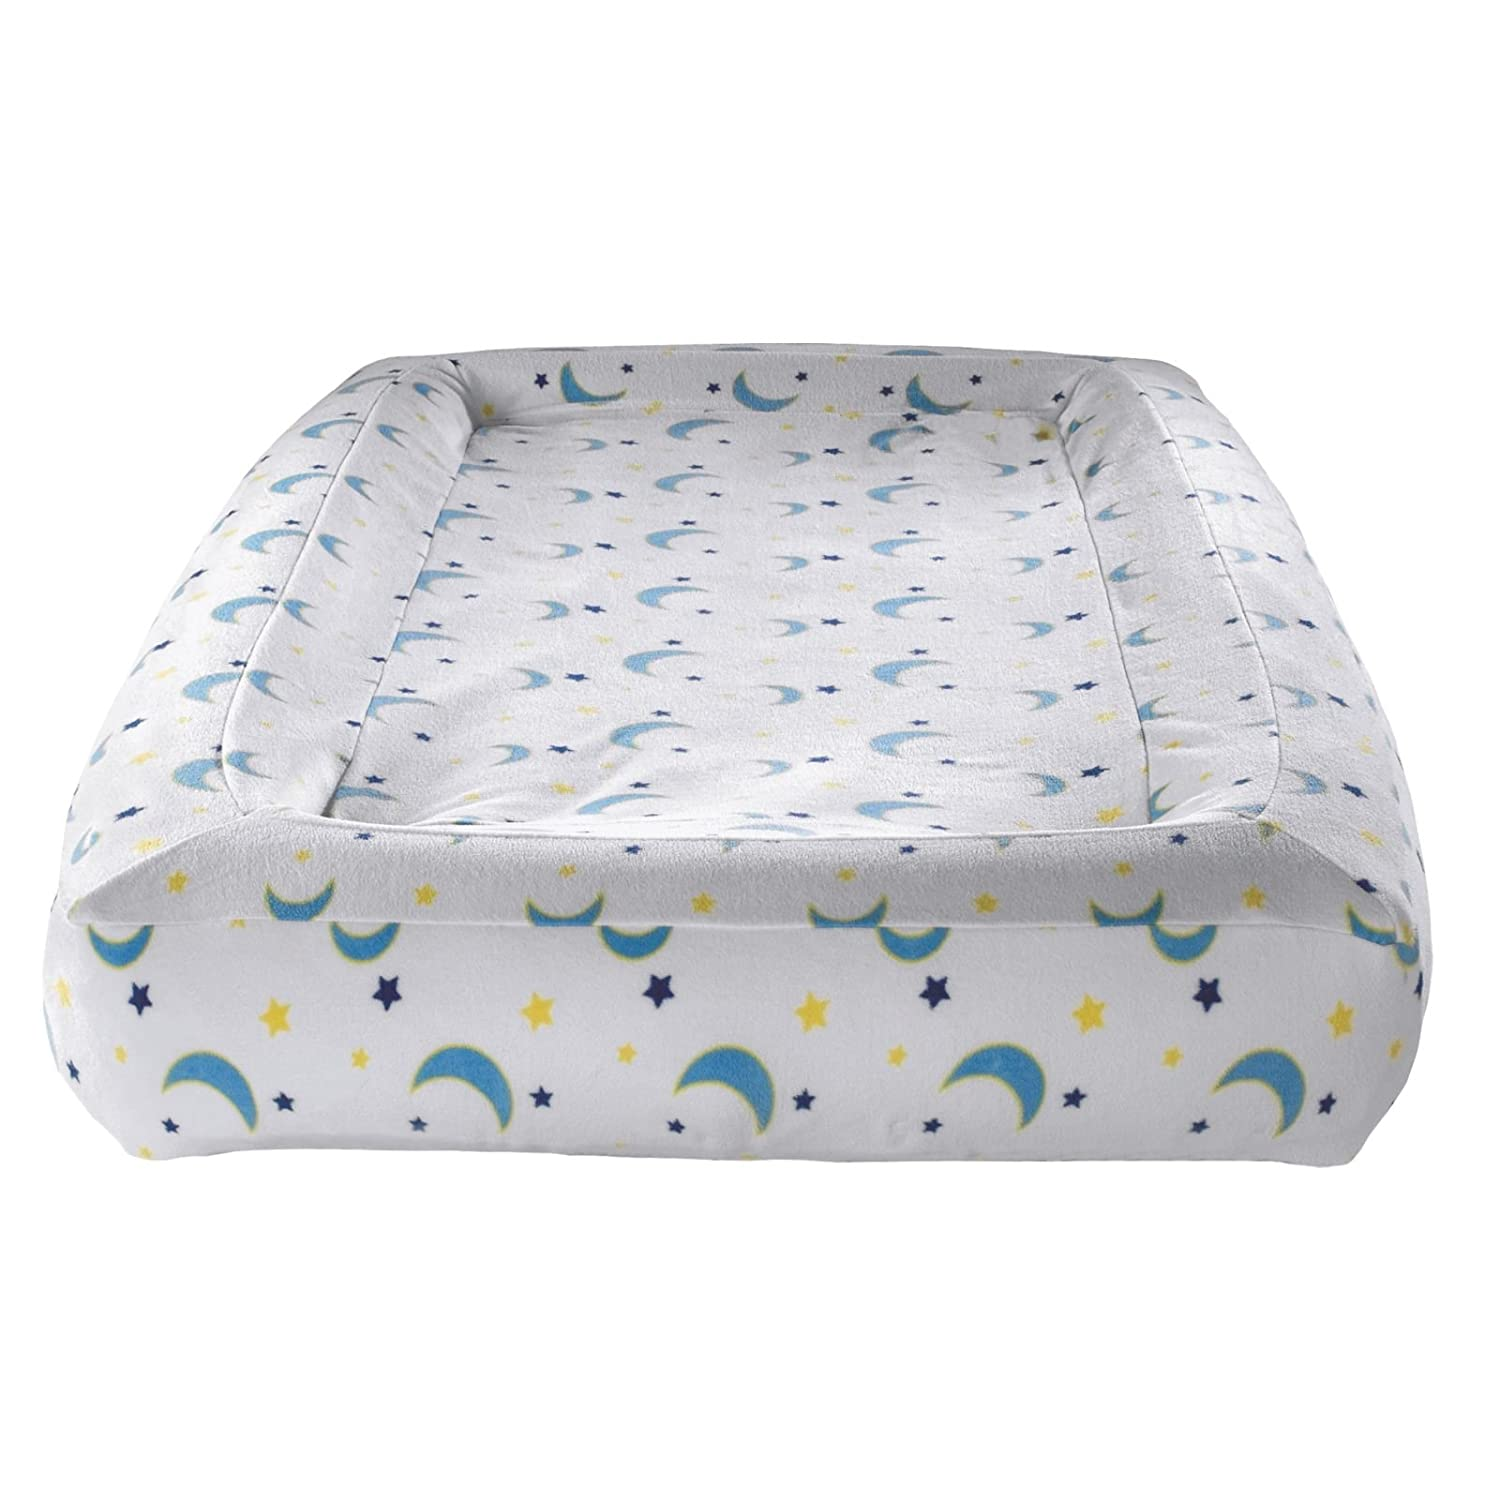 made headboards walmartcom beds kidsu toddler best junior products u quality kids for mattress eu